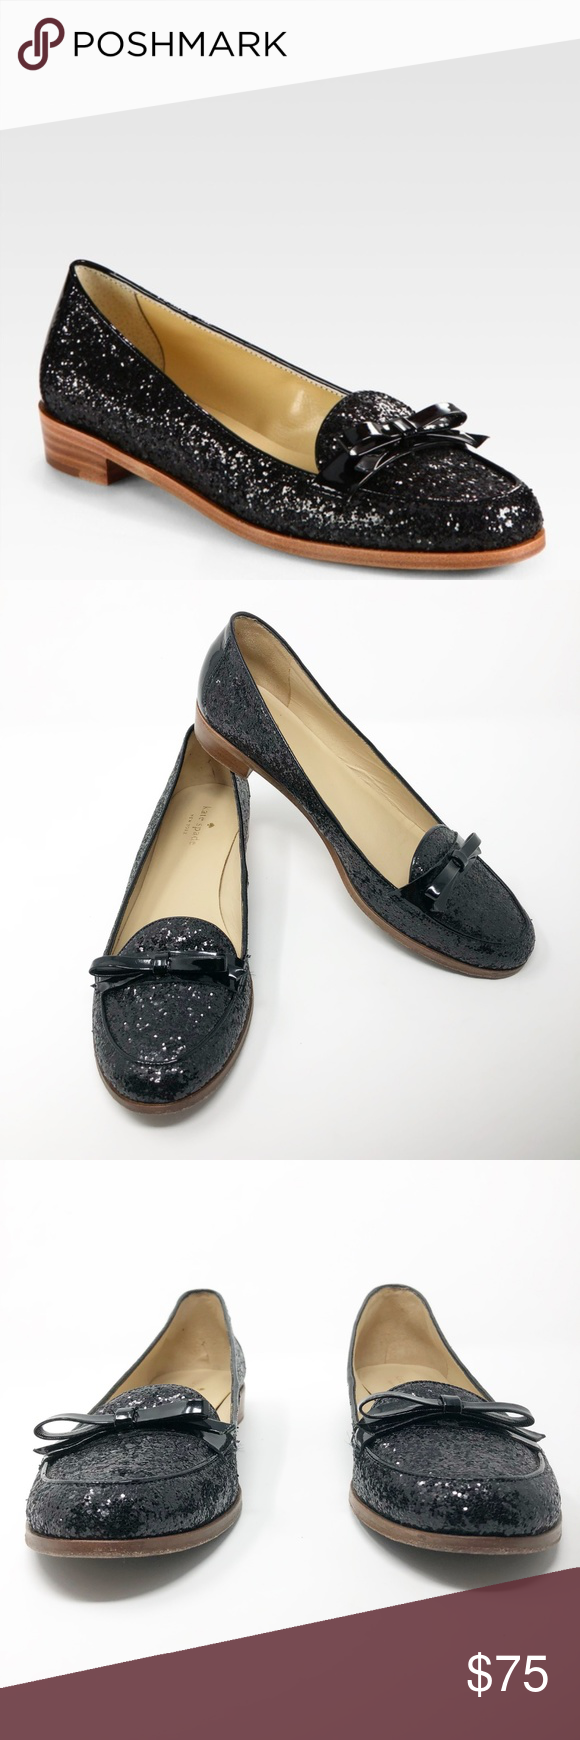 7796c4a5bfcf  Kate Spade  Black Glitter Loafer Cora Bow Flats Kate Spade New York Sz 9.5